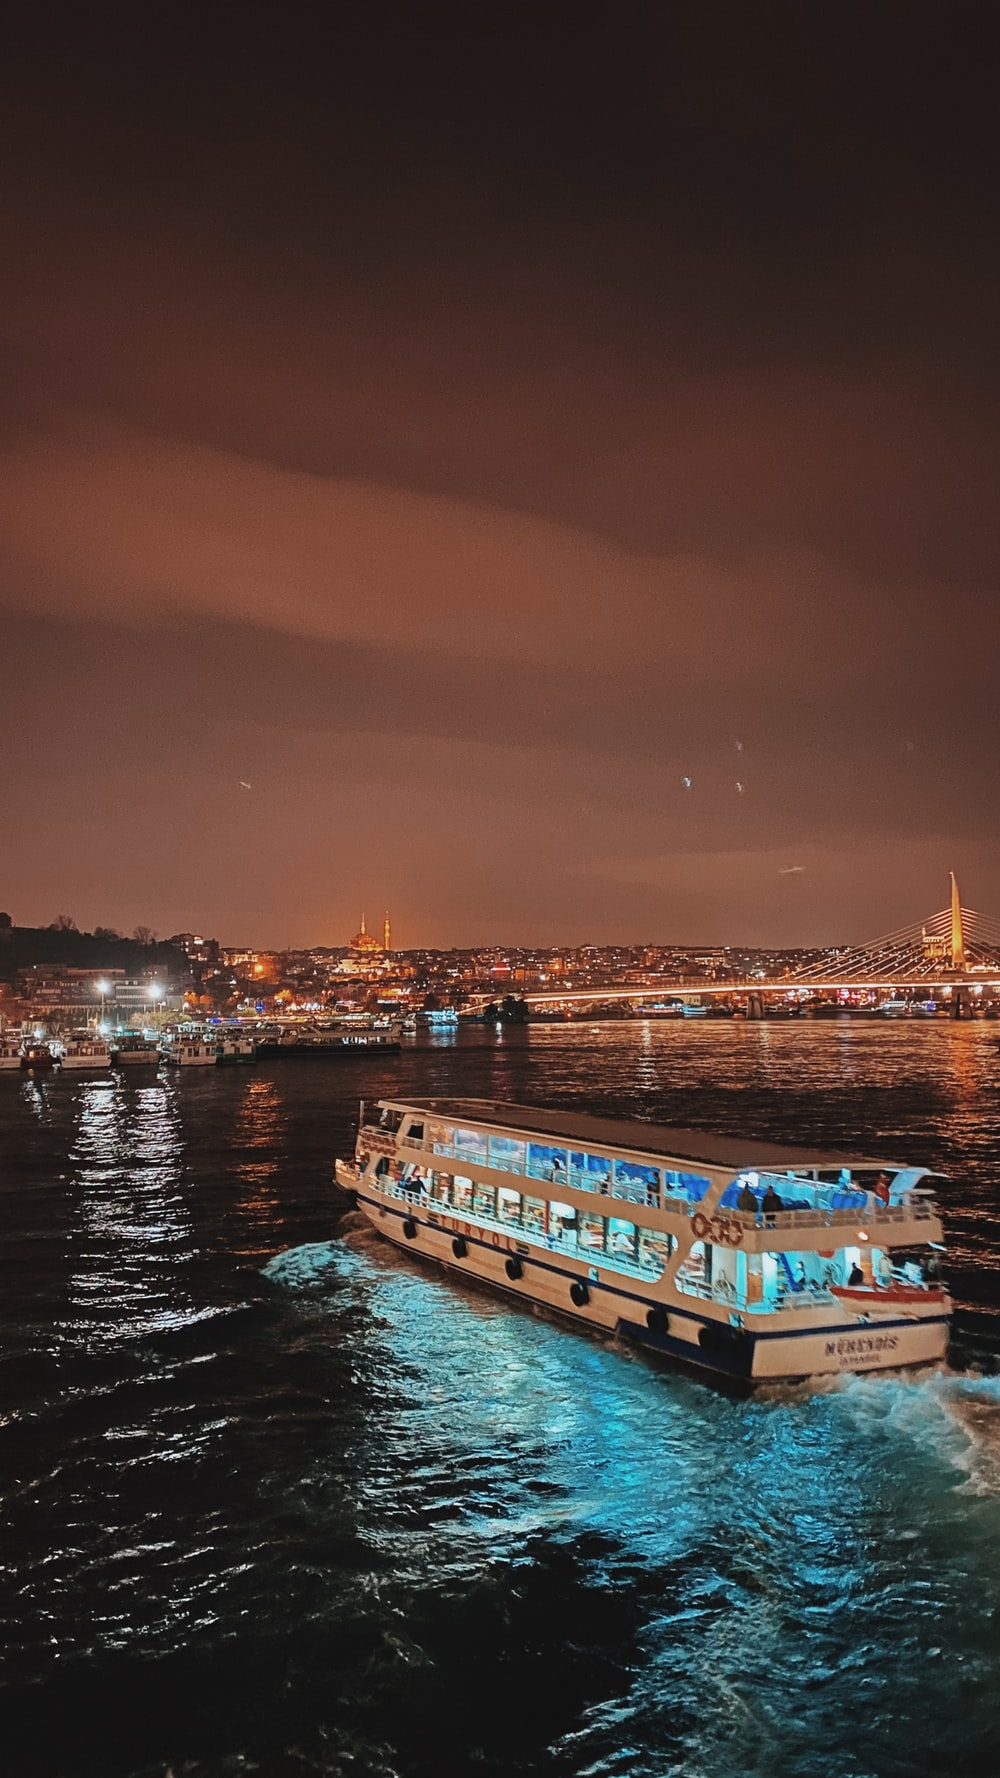 white and blue boat on water during night time